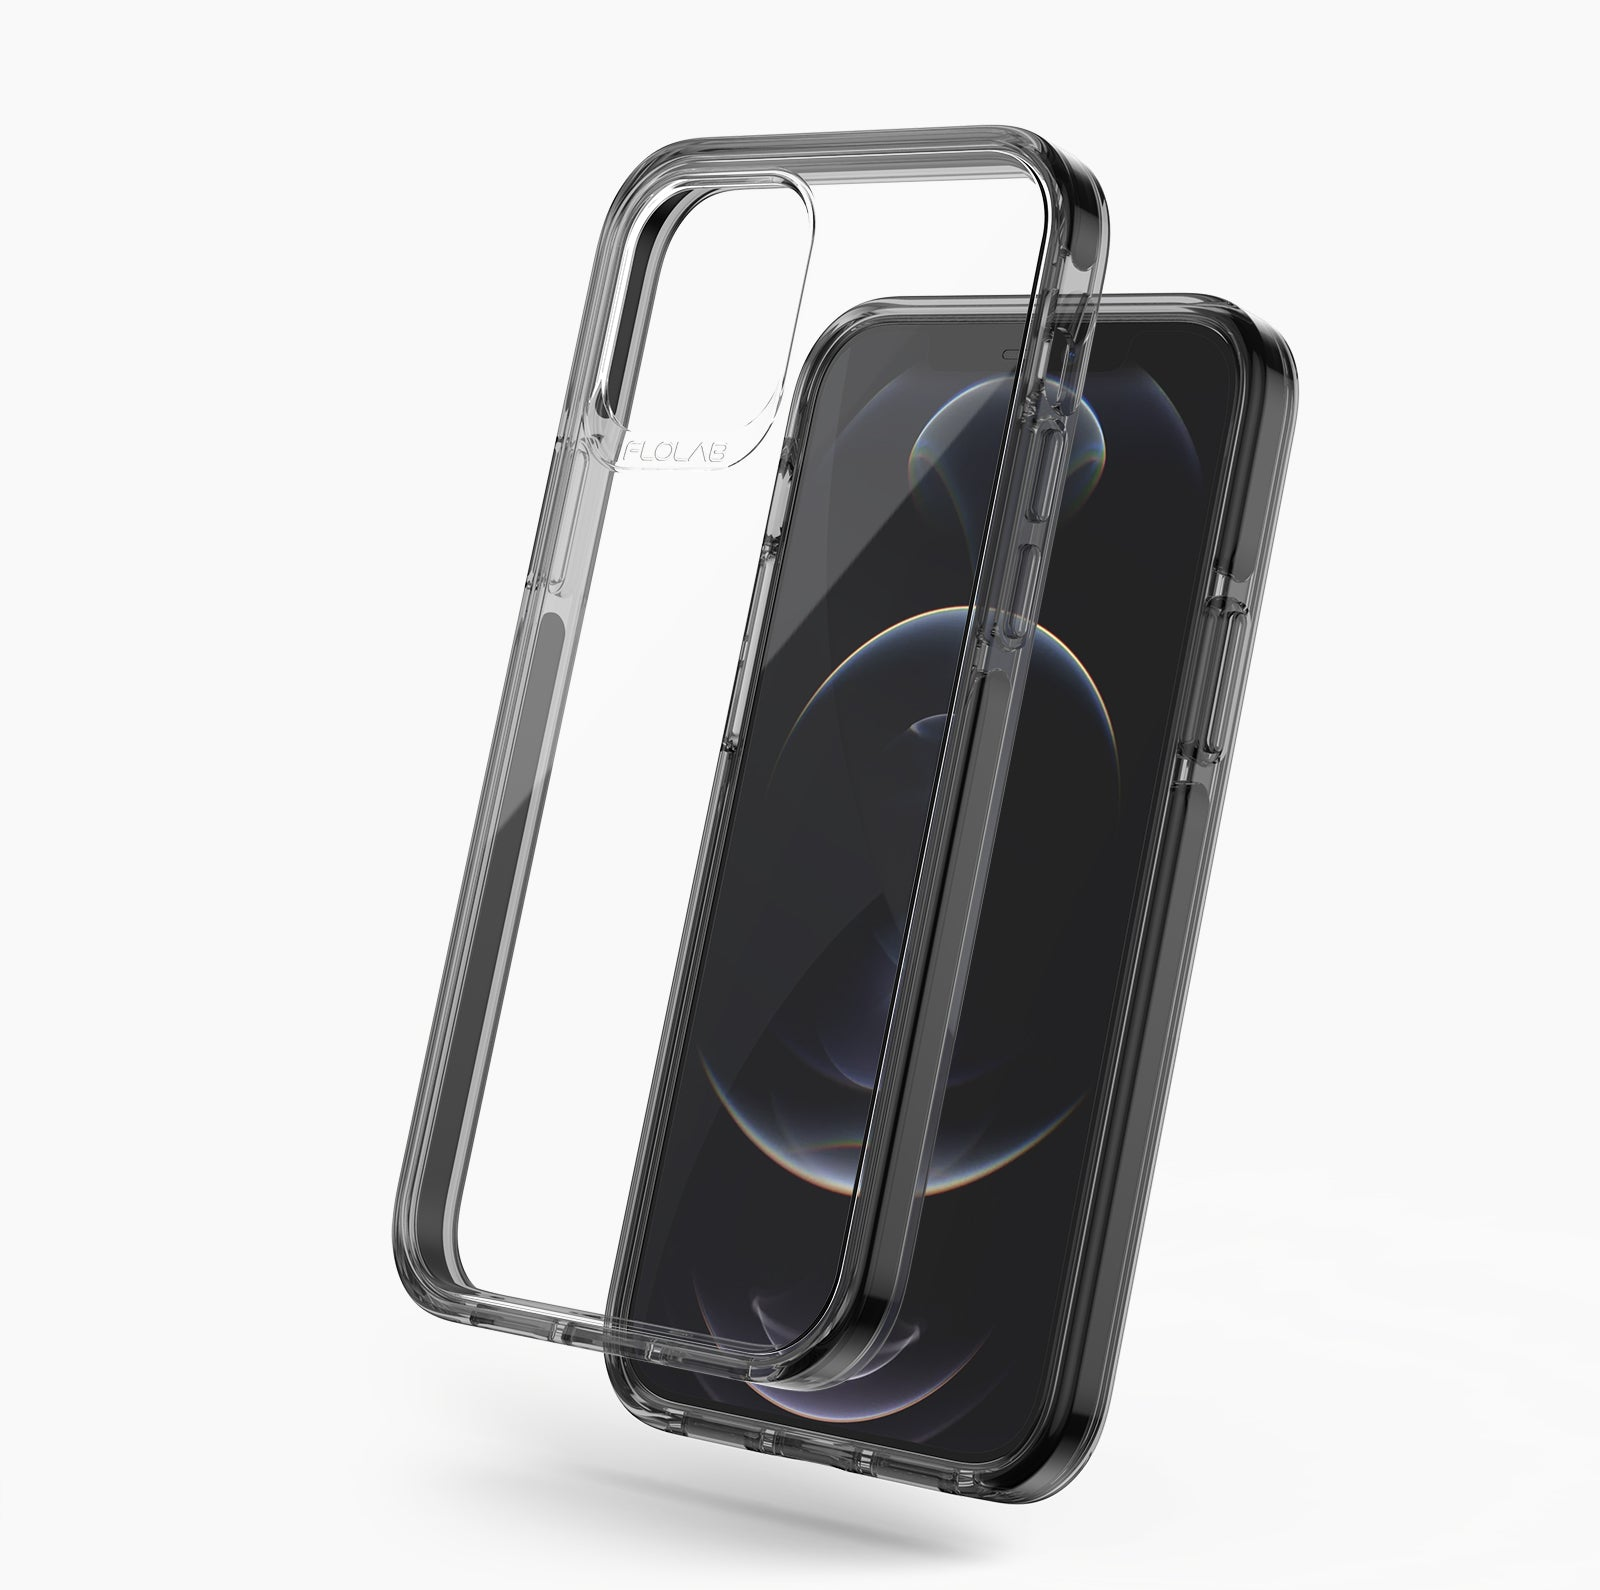 Black Clear iPhone 12 Case TAFFYCA Series *Ships November 1st-5th*